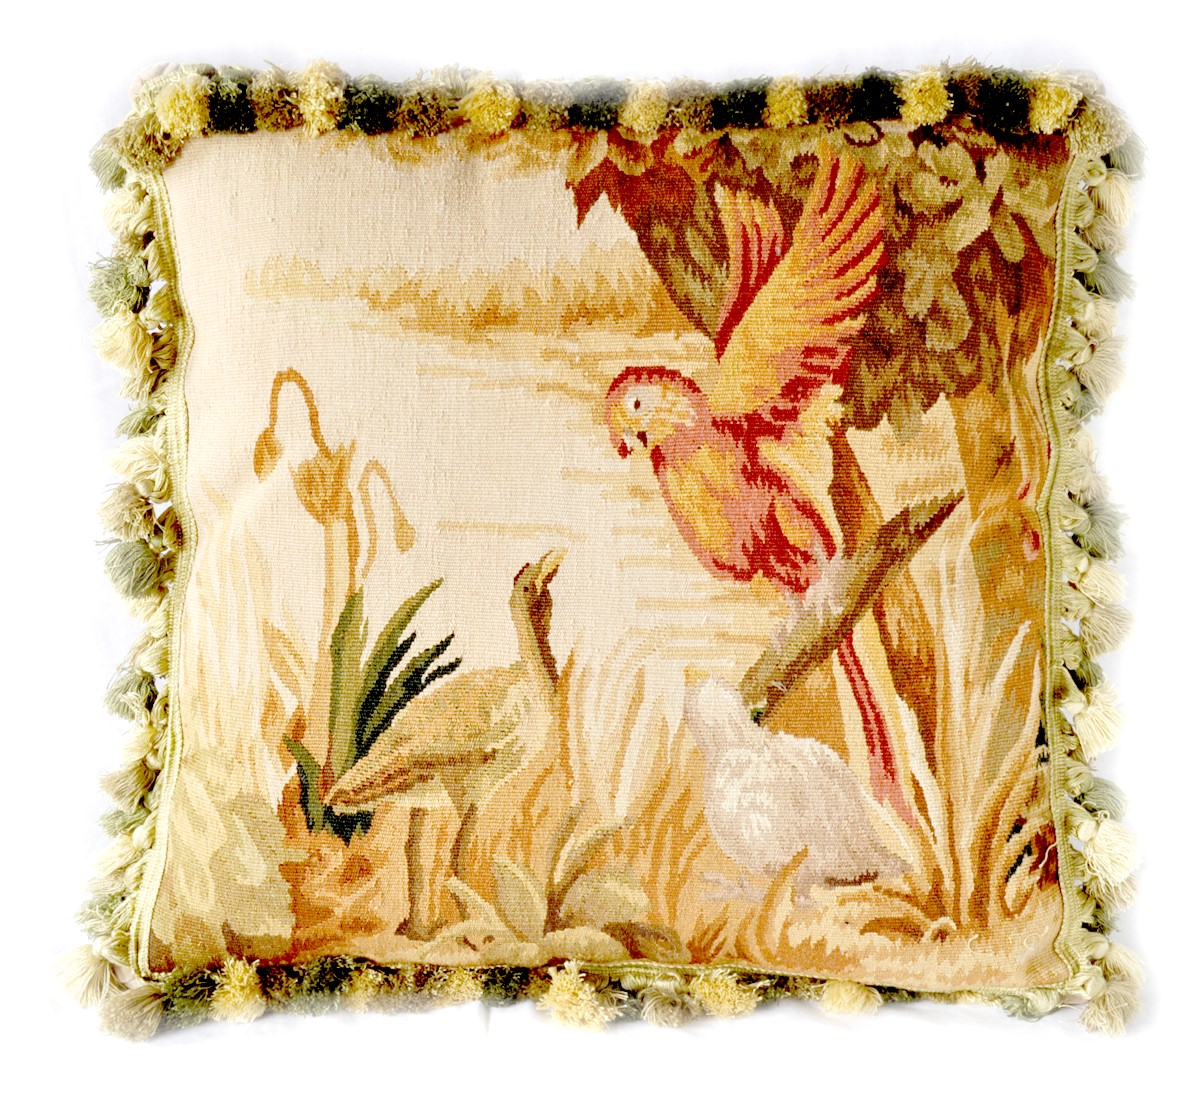 22″x22″ Handwoven French Gobelins Tapestry Weave Wool Parrot Aubusson Cushion Cover Pillow Case 12980043